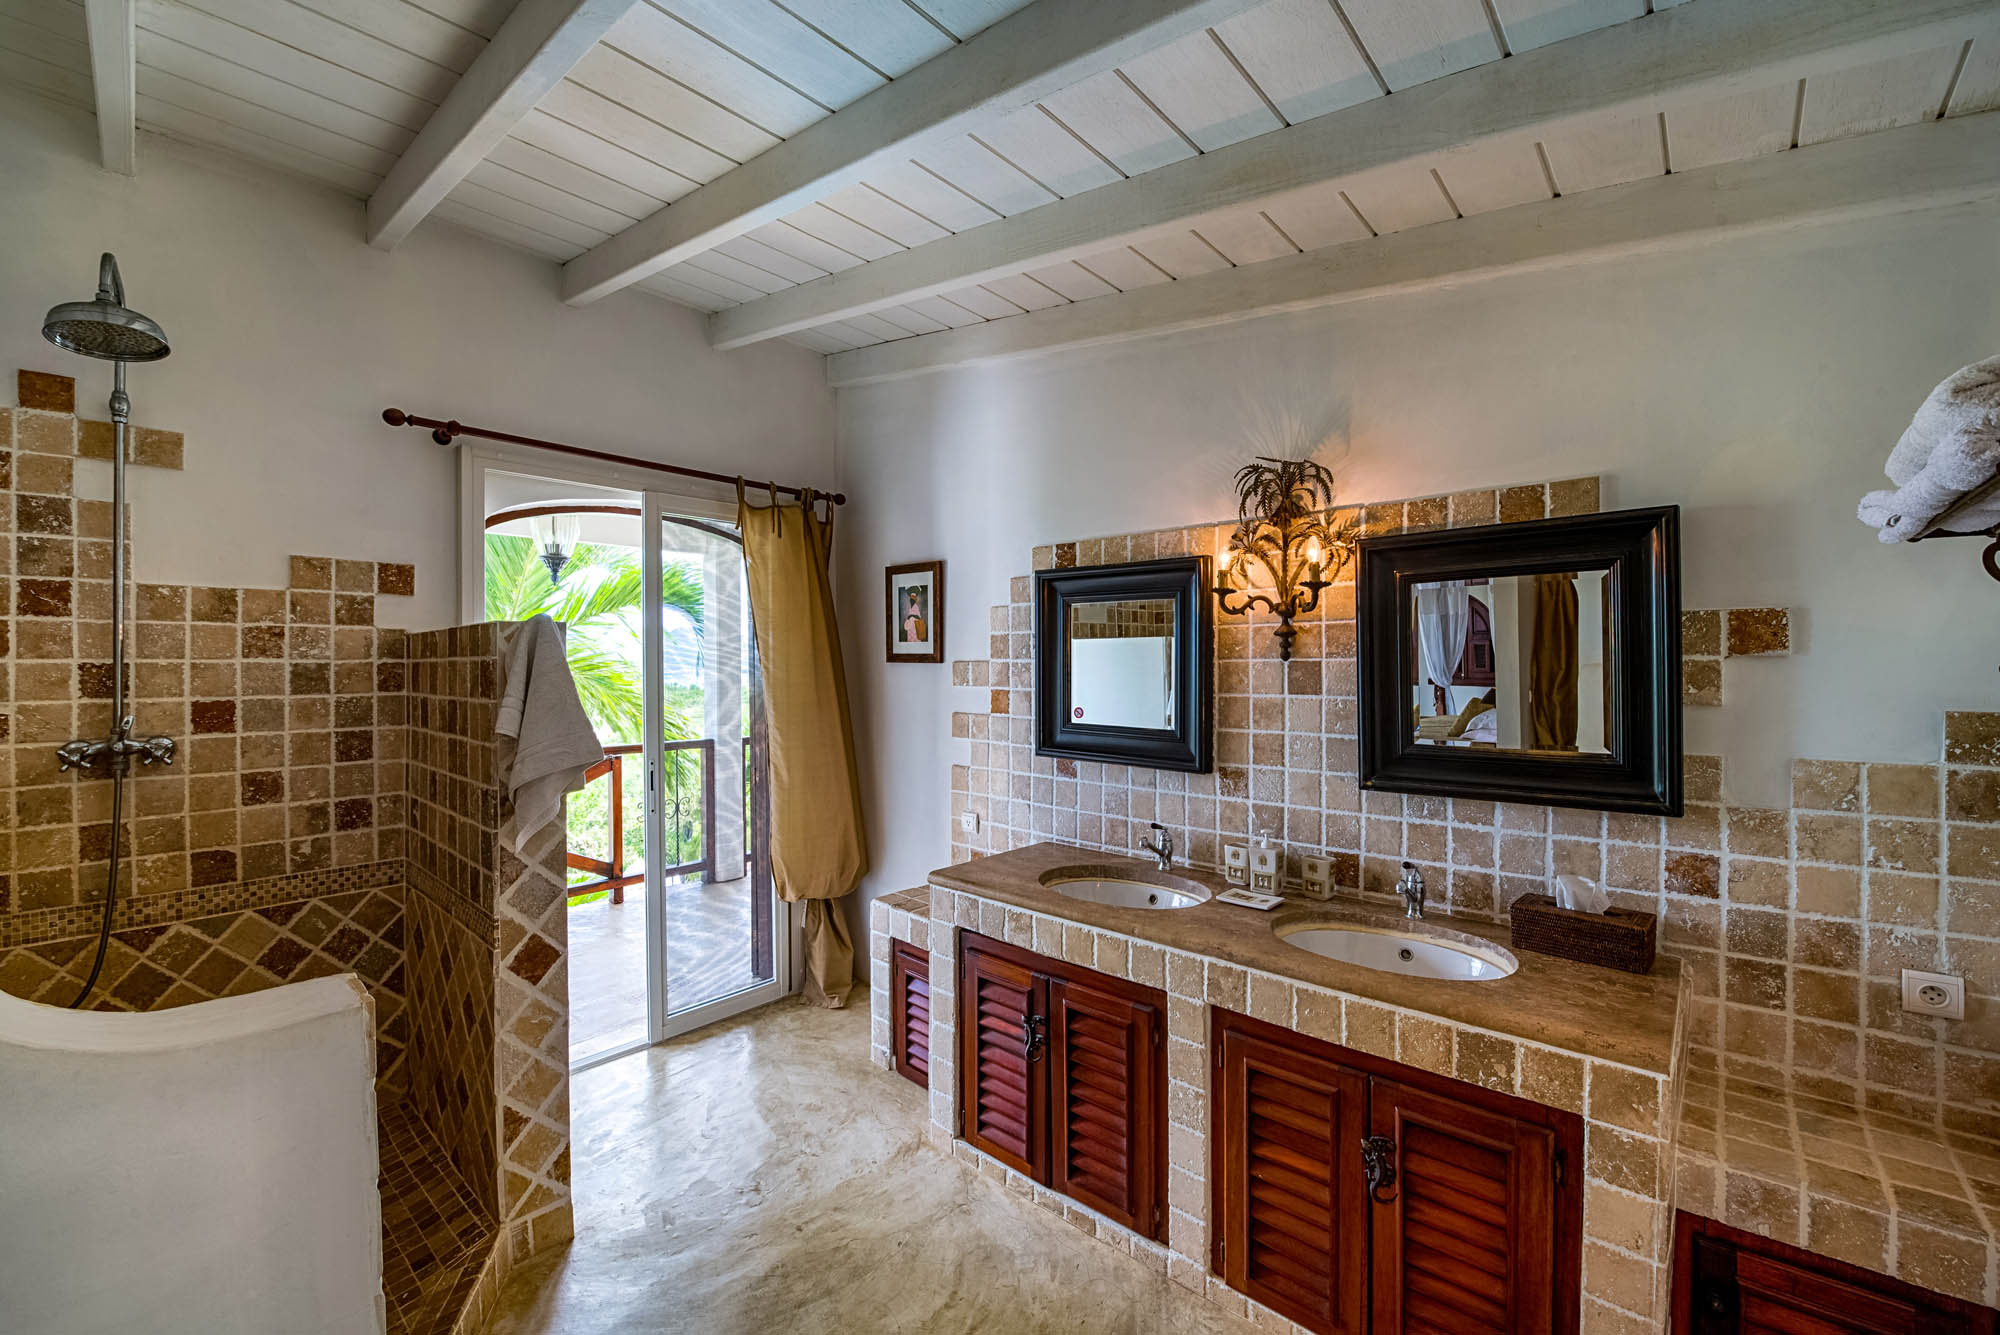 Take a refreshing shower in your private bathroom at Le Mas des Sables, Baie aux Cayes, Terres-Basses, St. Martin villa rental, French West Indies.